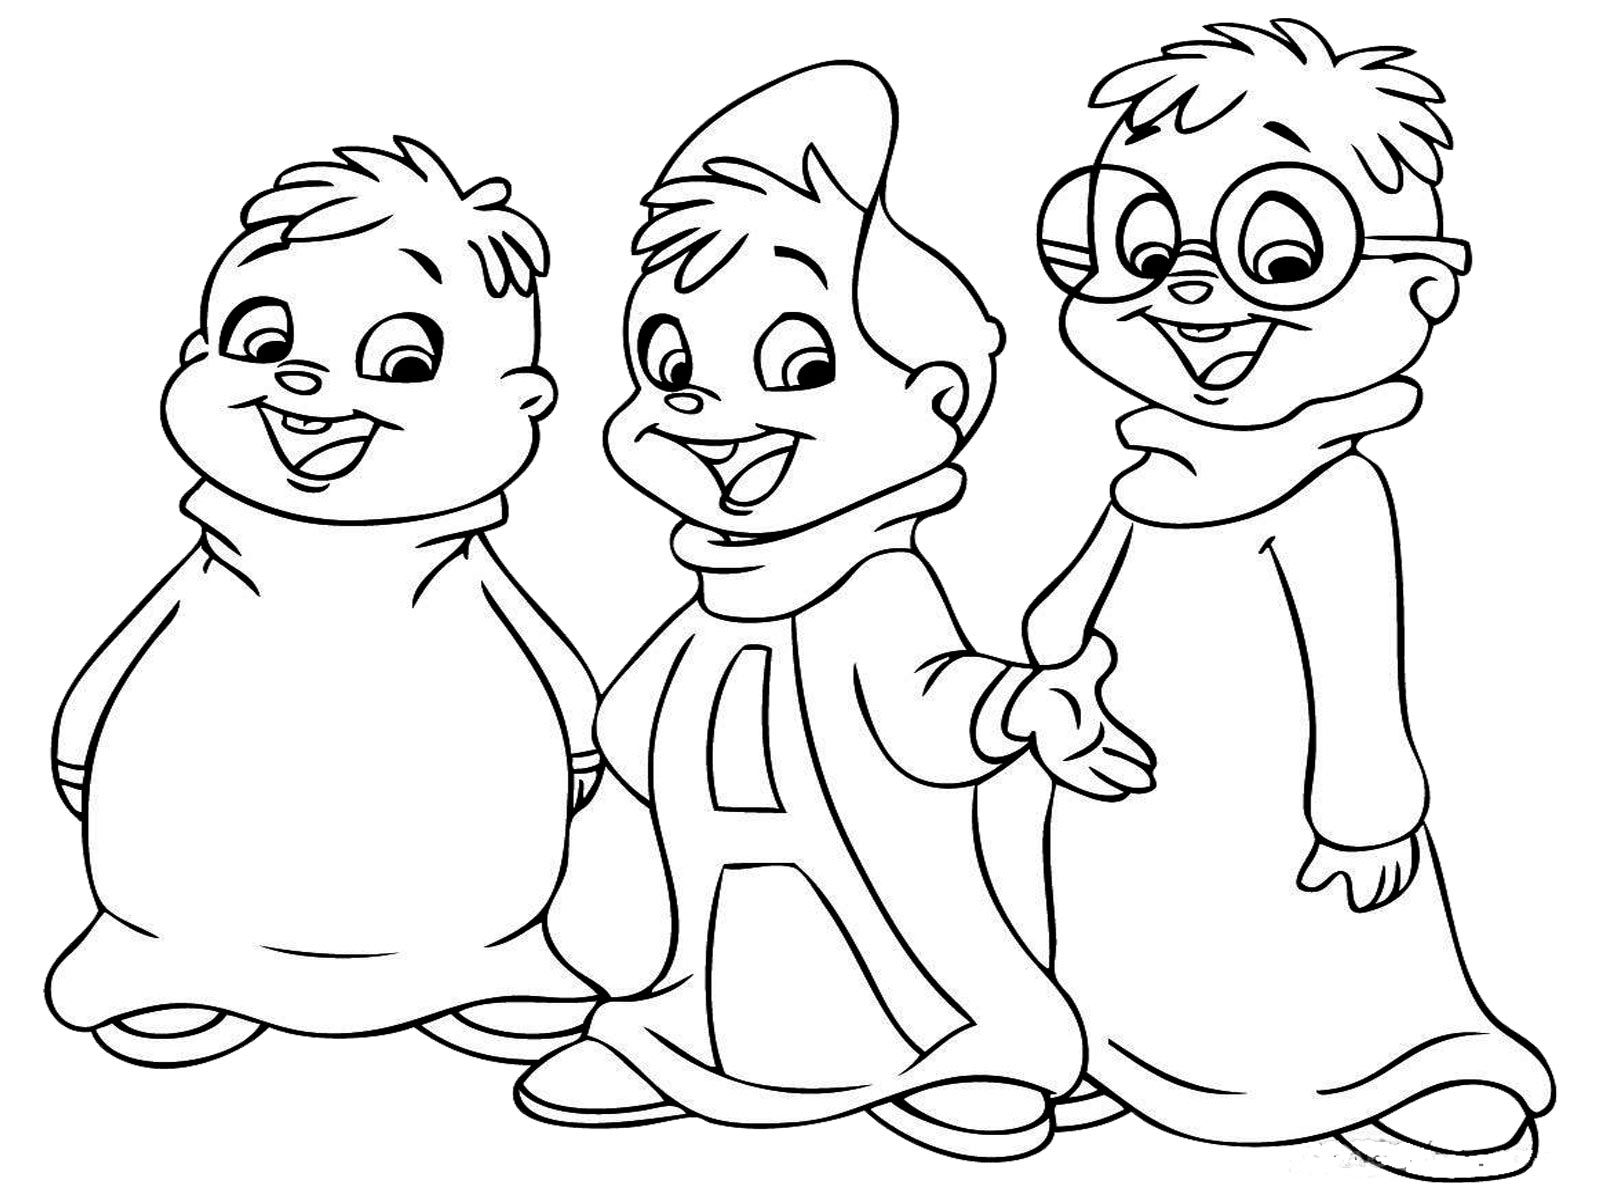 Printable Coloring Pages For Boys  Alvin And The Chipmunks